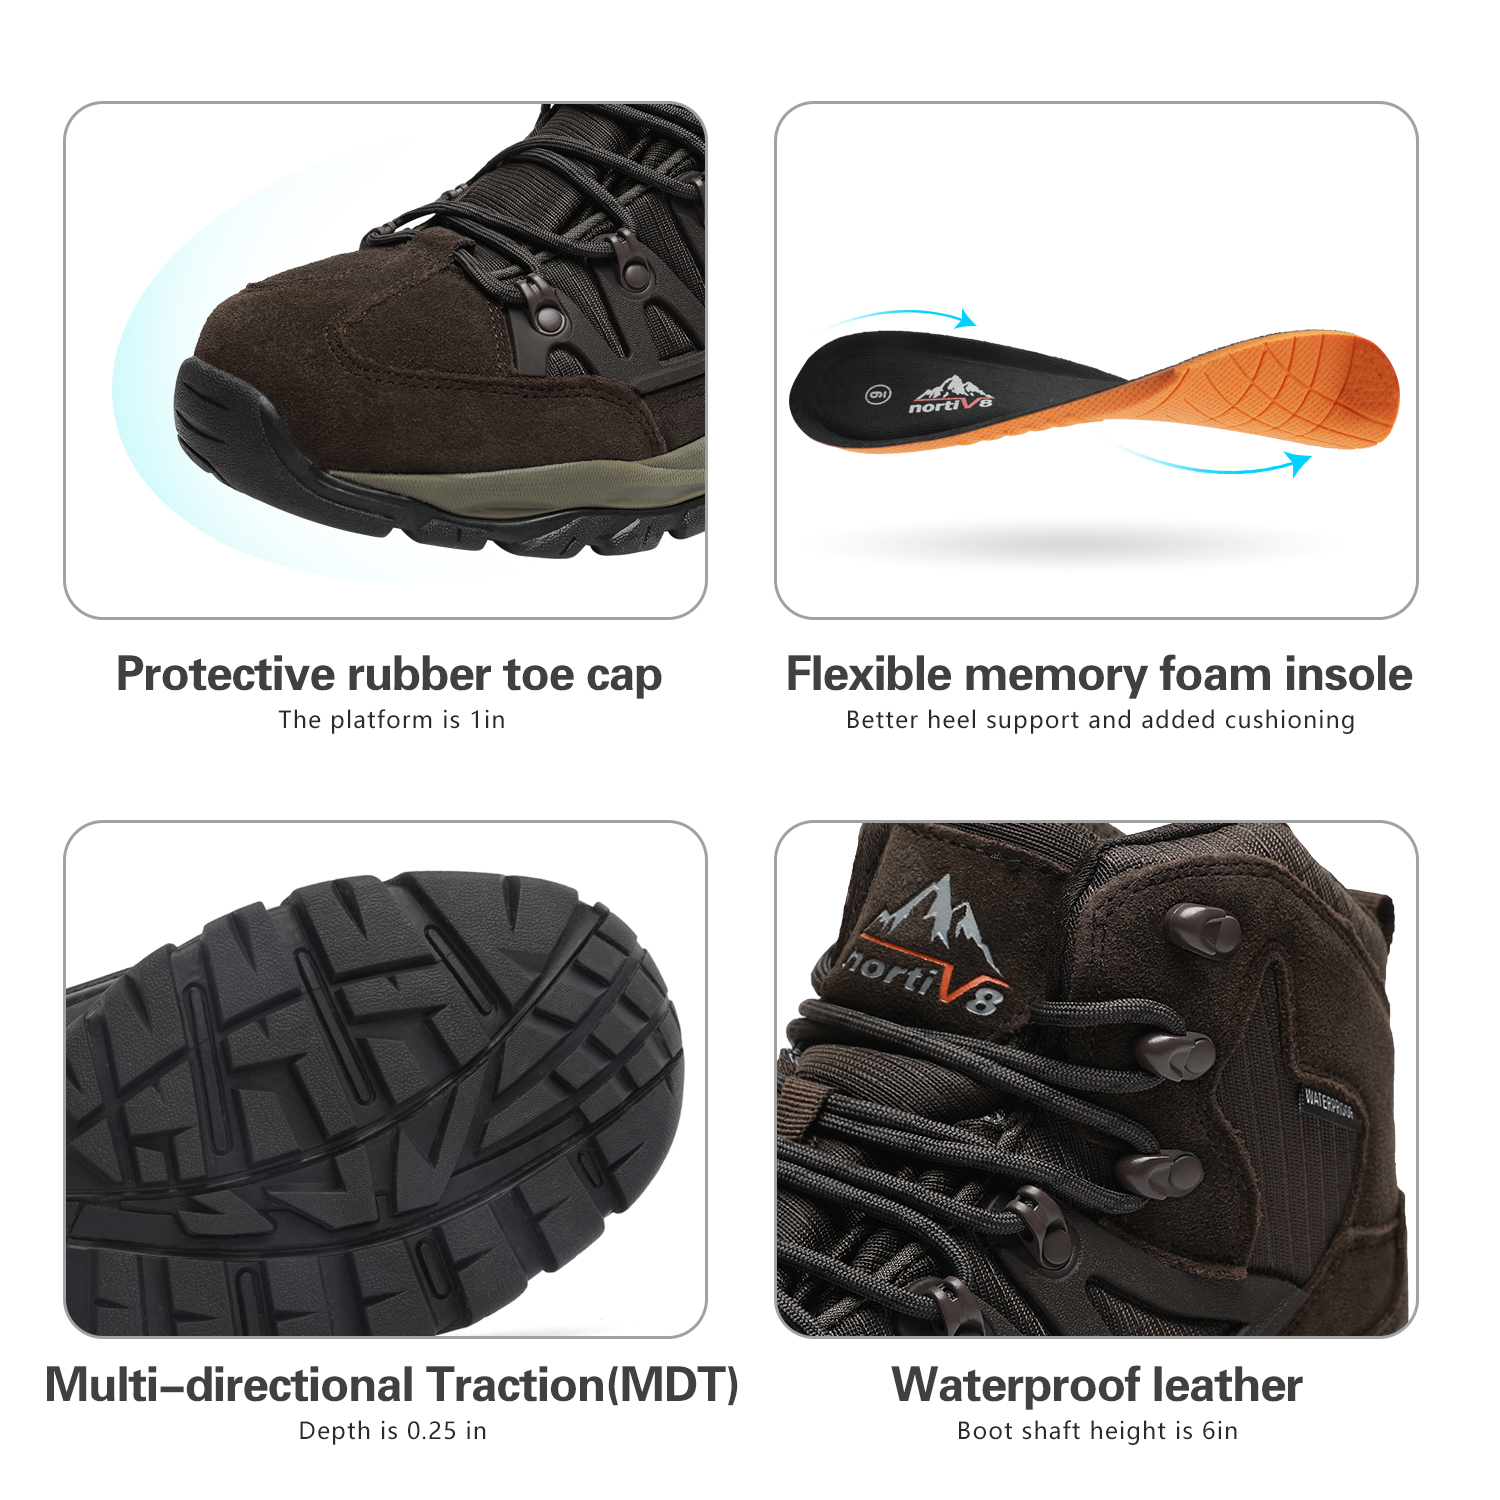 NORTIV-8-Men-039-s-Ankle-Waterproof-Hiking-Boots-Lightweight-Backpacking-Work-Shoes thumbnail 35